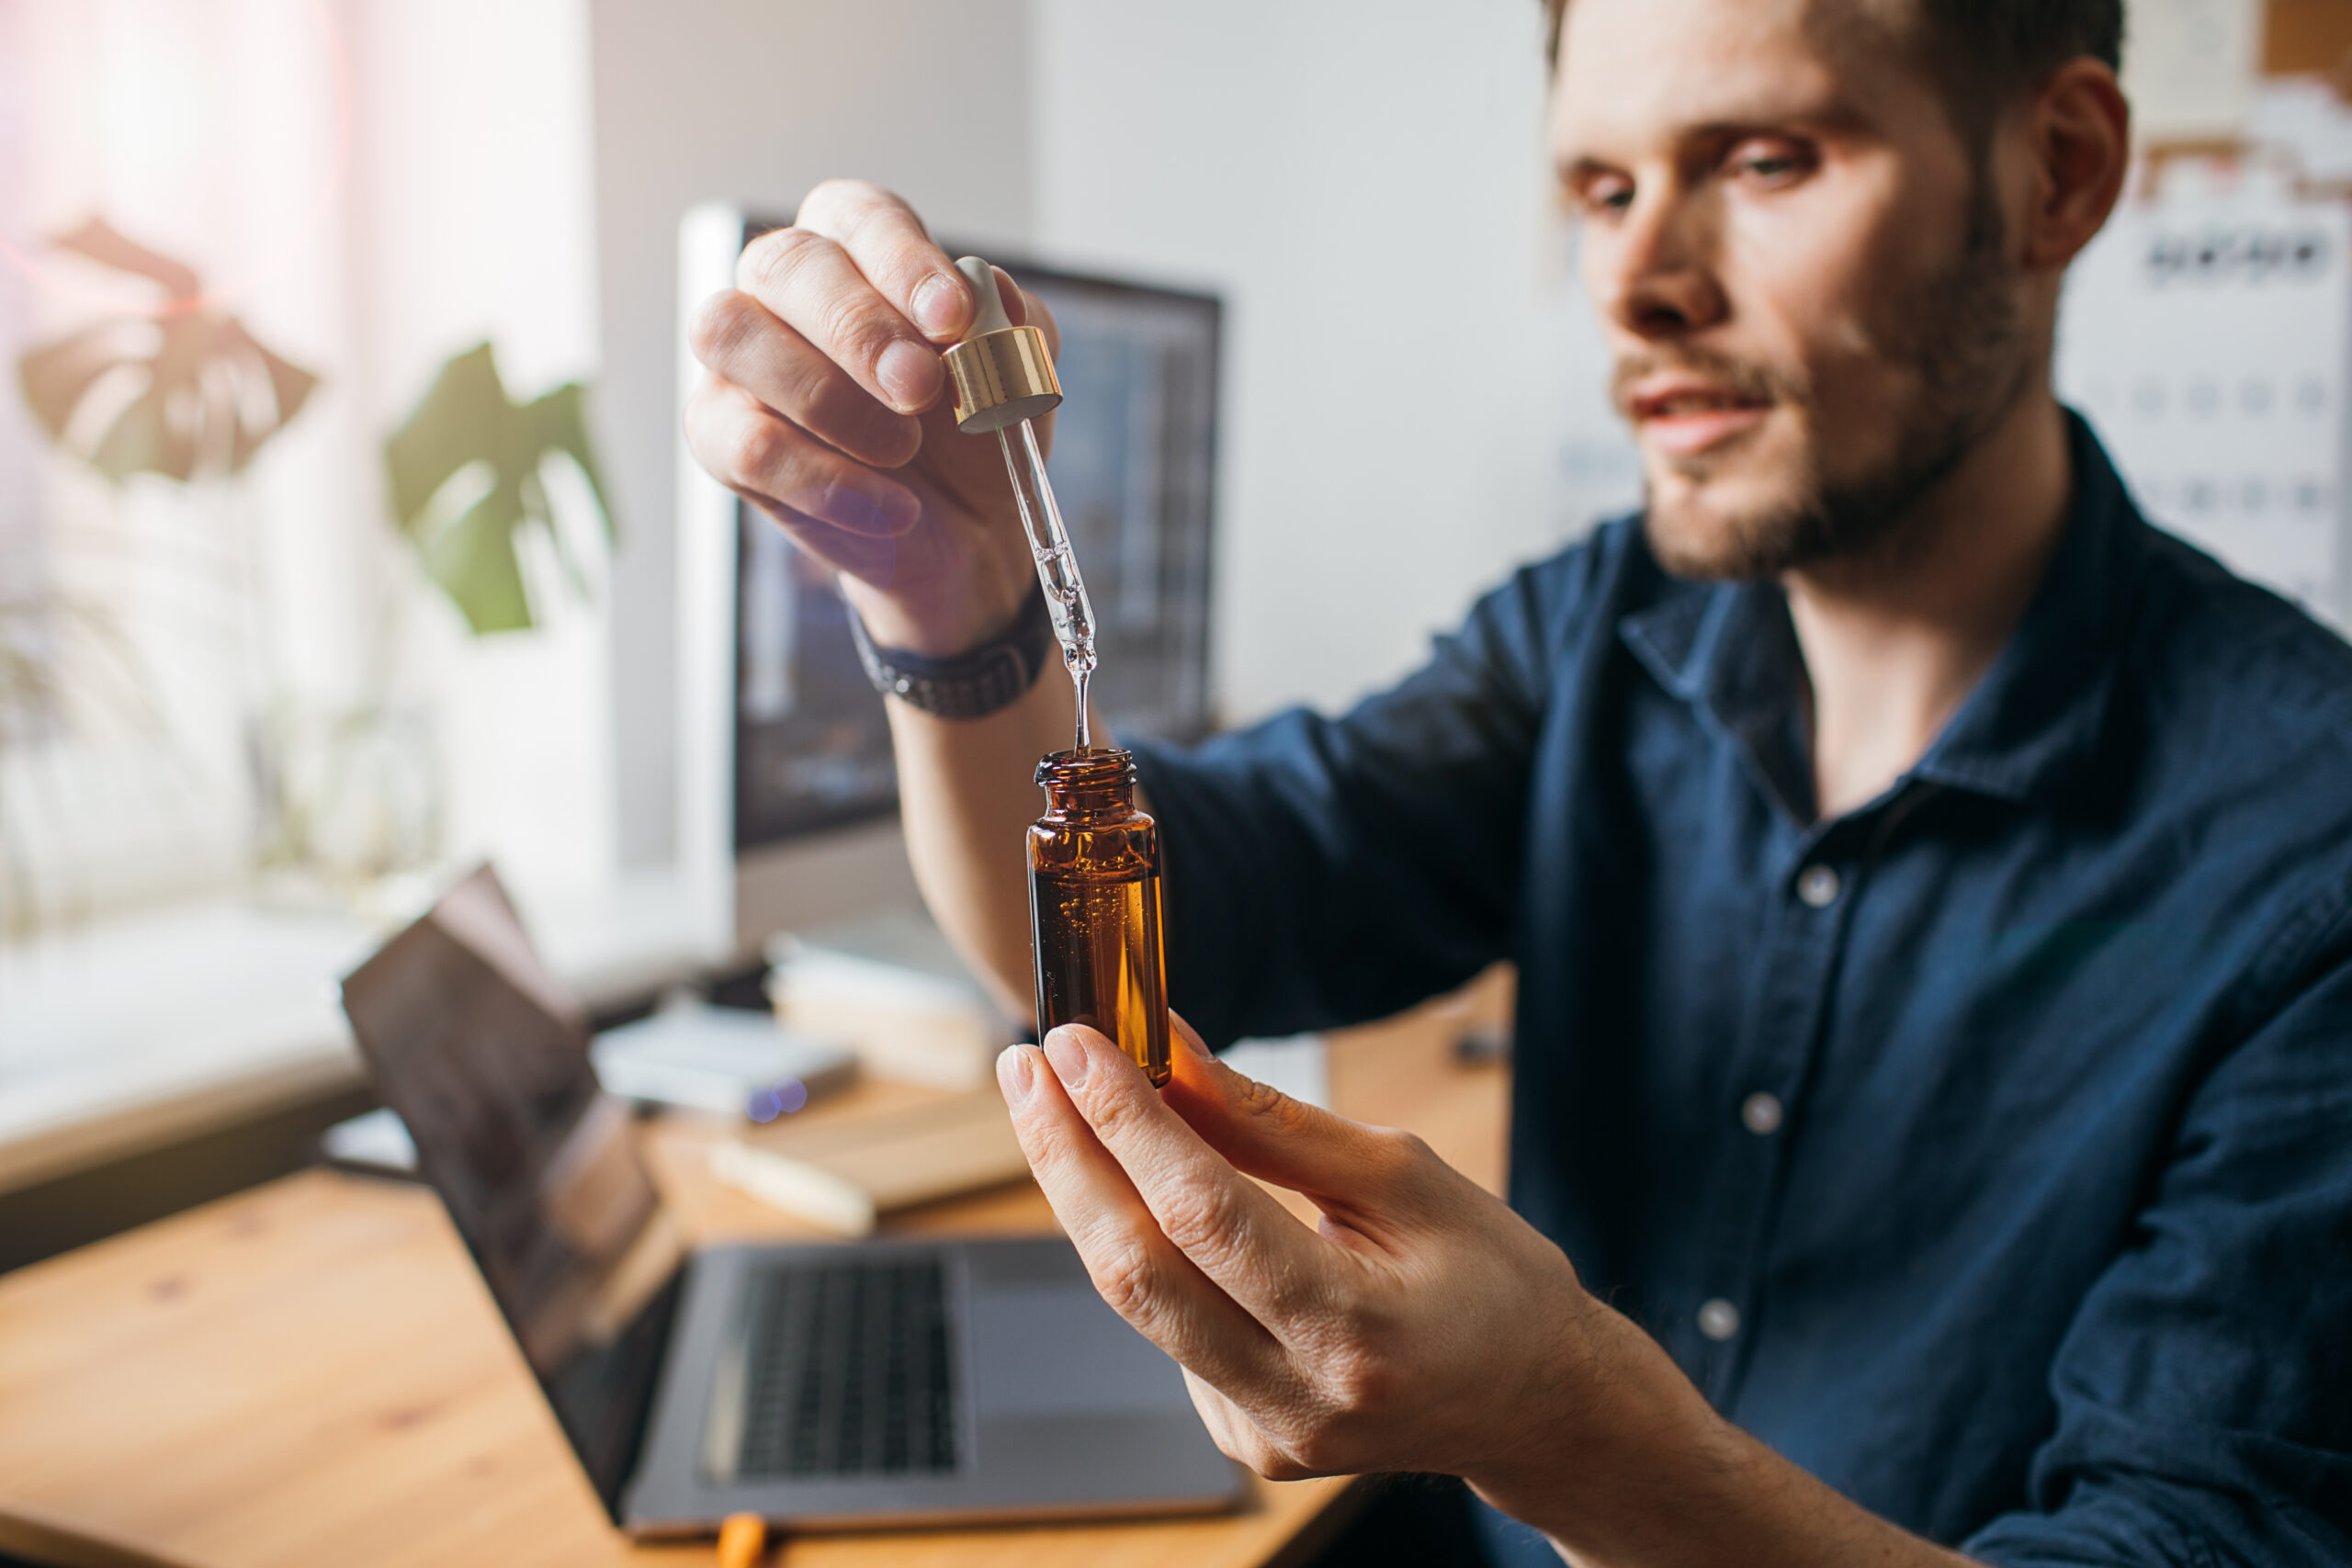 How To Use CBD Oil To Improve Your Performance In The Bedroom